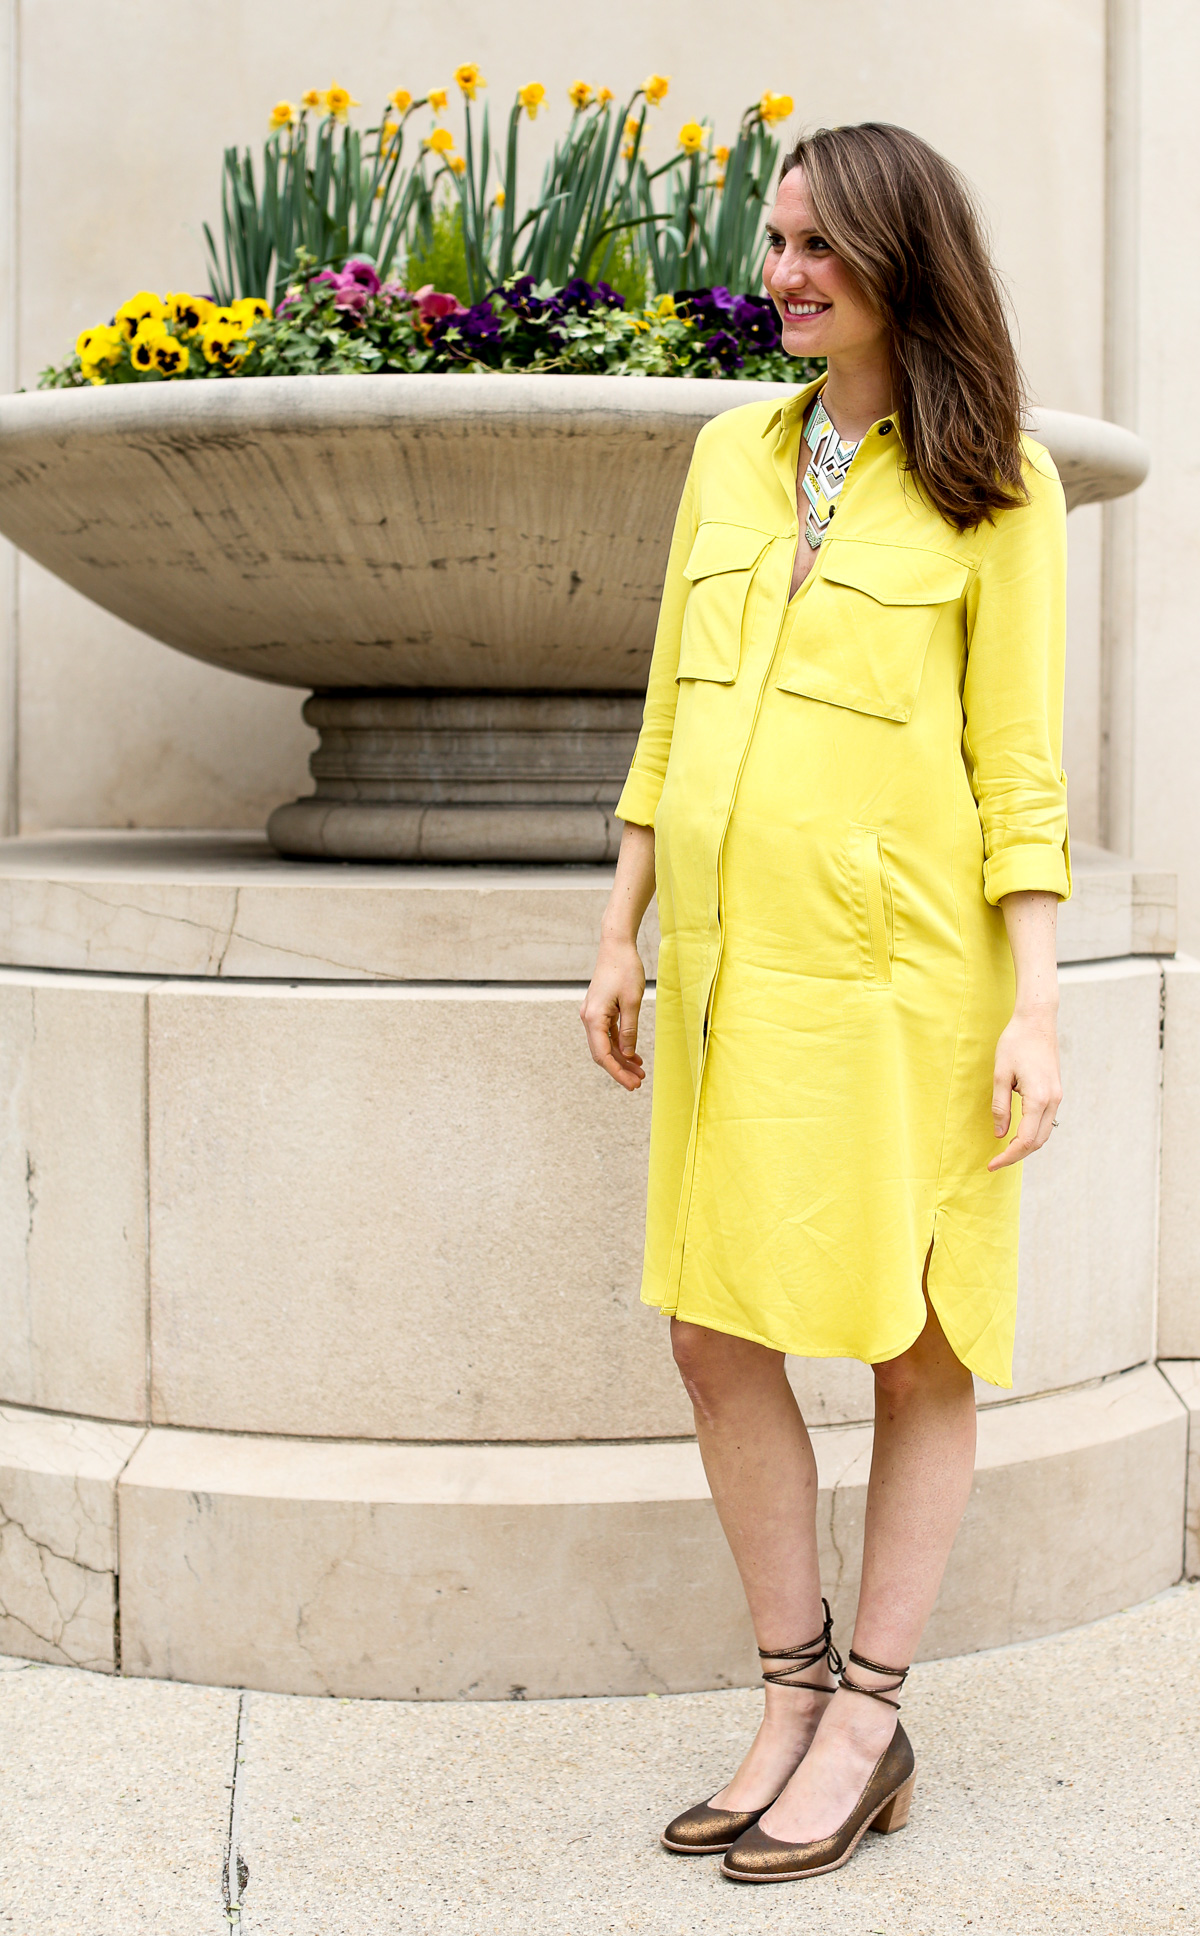 Pregnancy Fashion_Zara dress_Top Chicago Style Bloggers-3